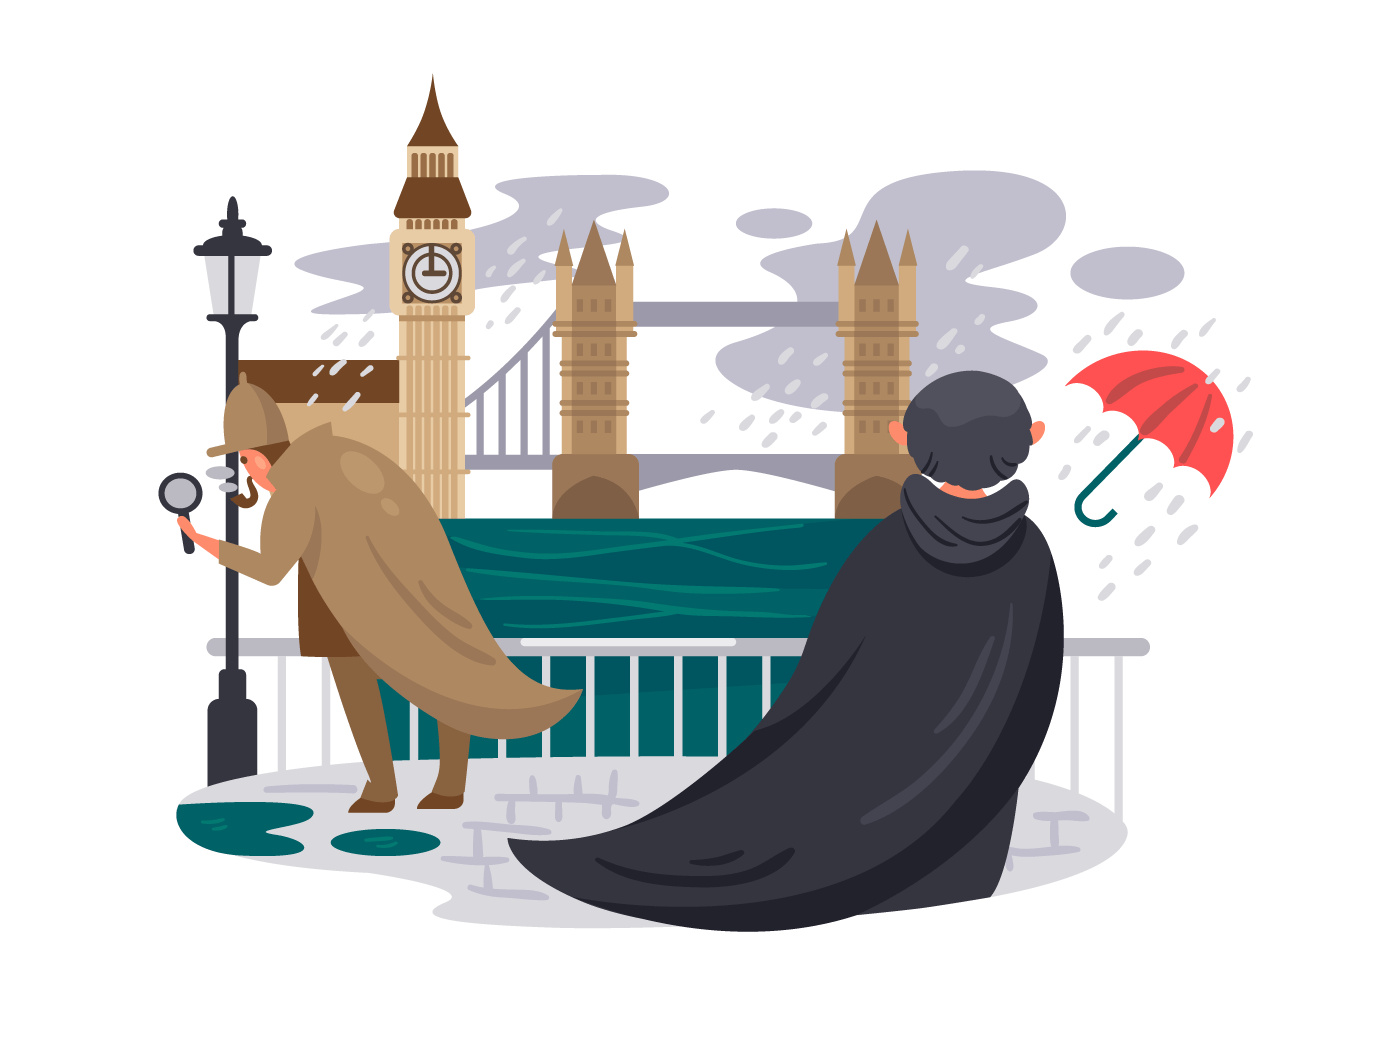 London river embankment. People in rain on waterfront. Vector illustration